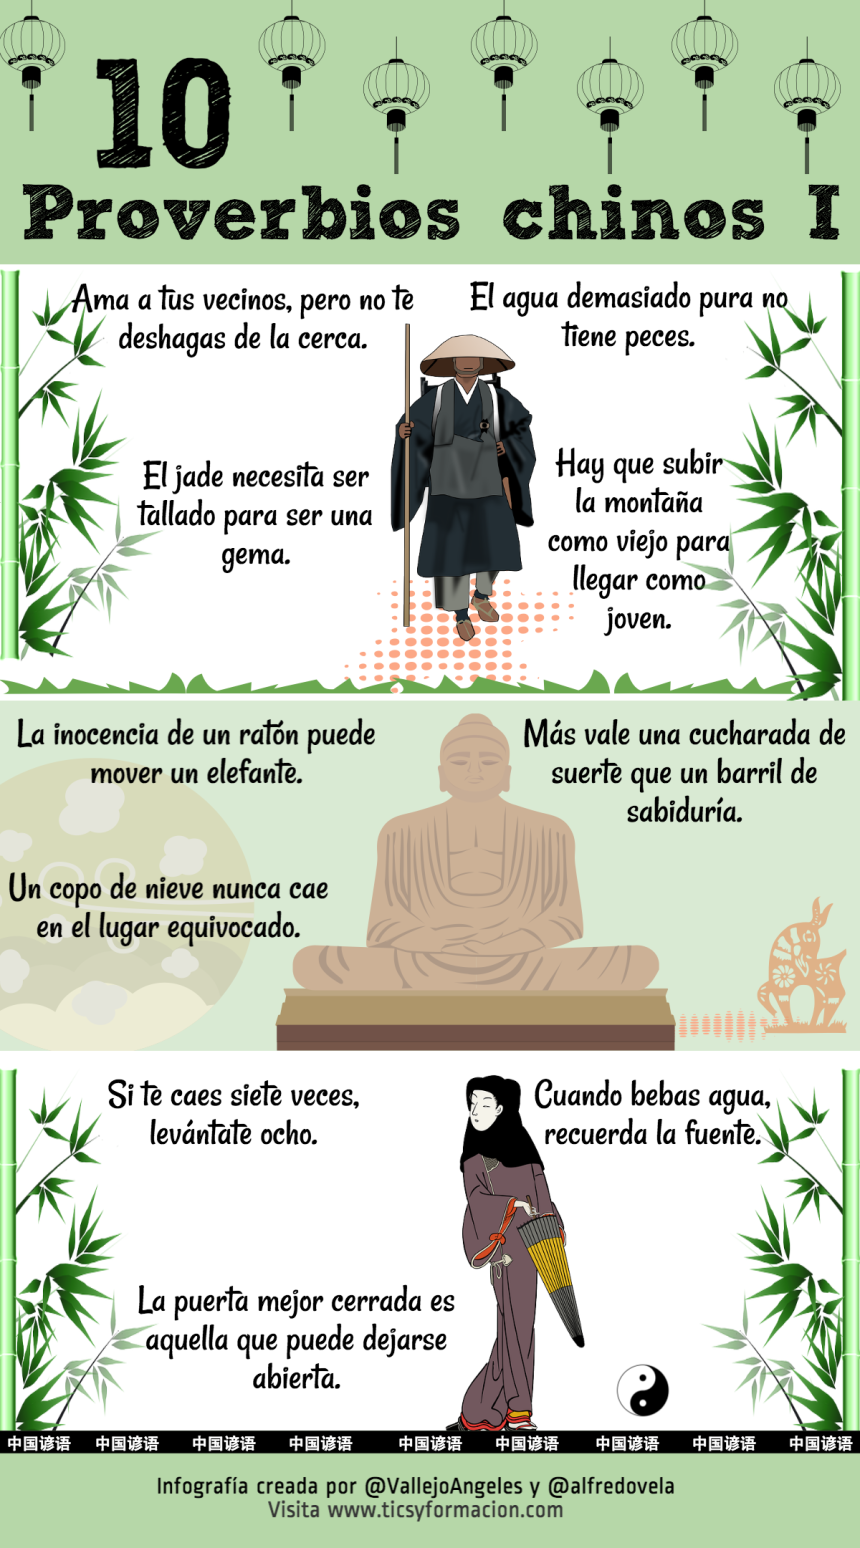 10 proverbios chinos (I)